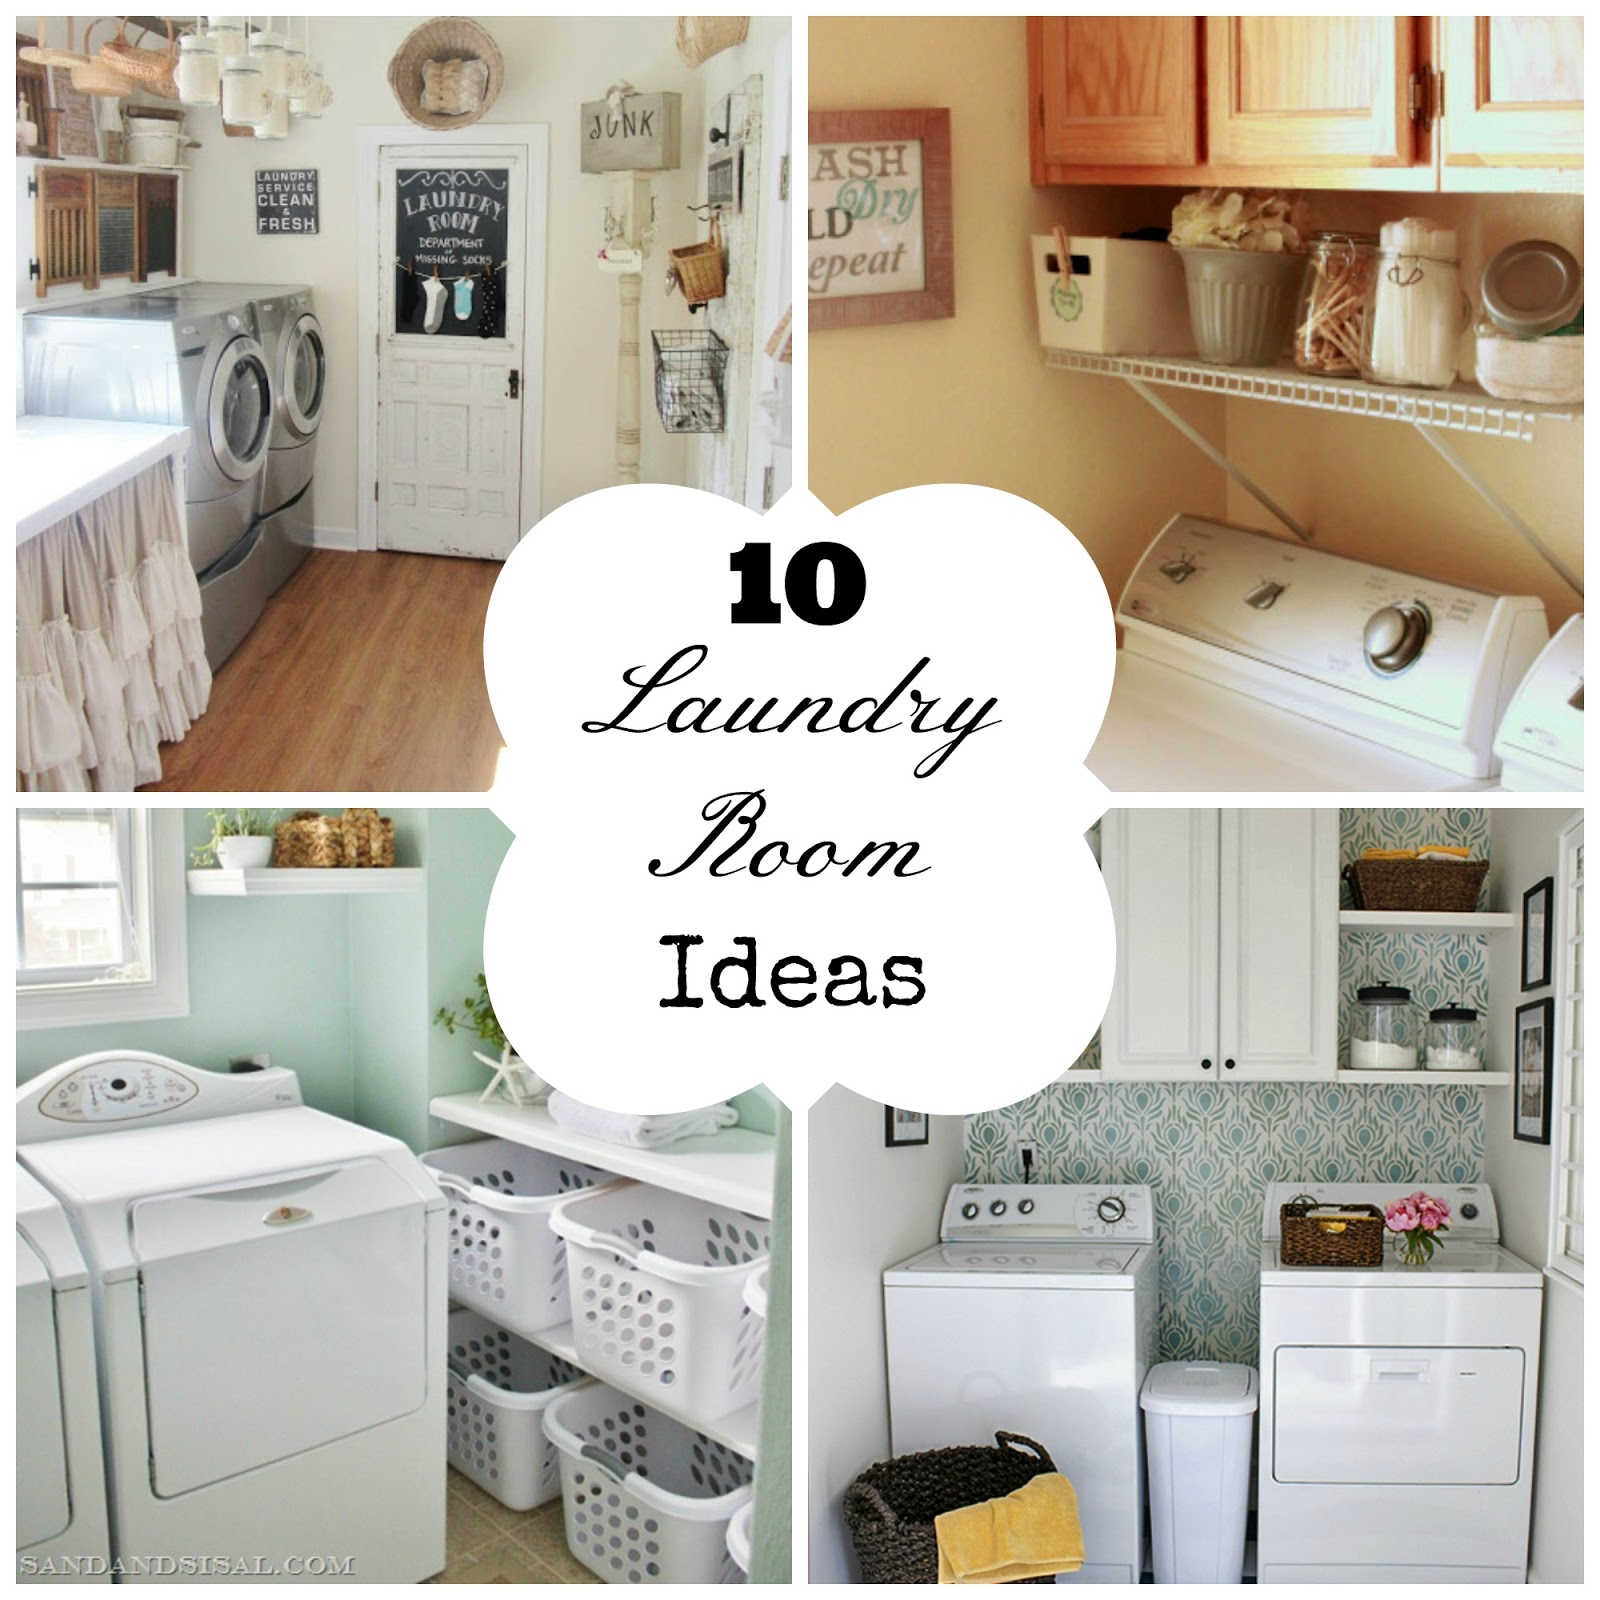 laundry room ideas fir small rooms ointerest joy studio